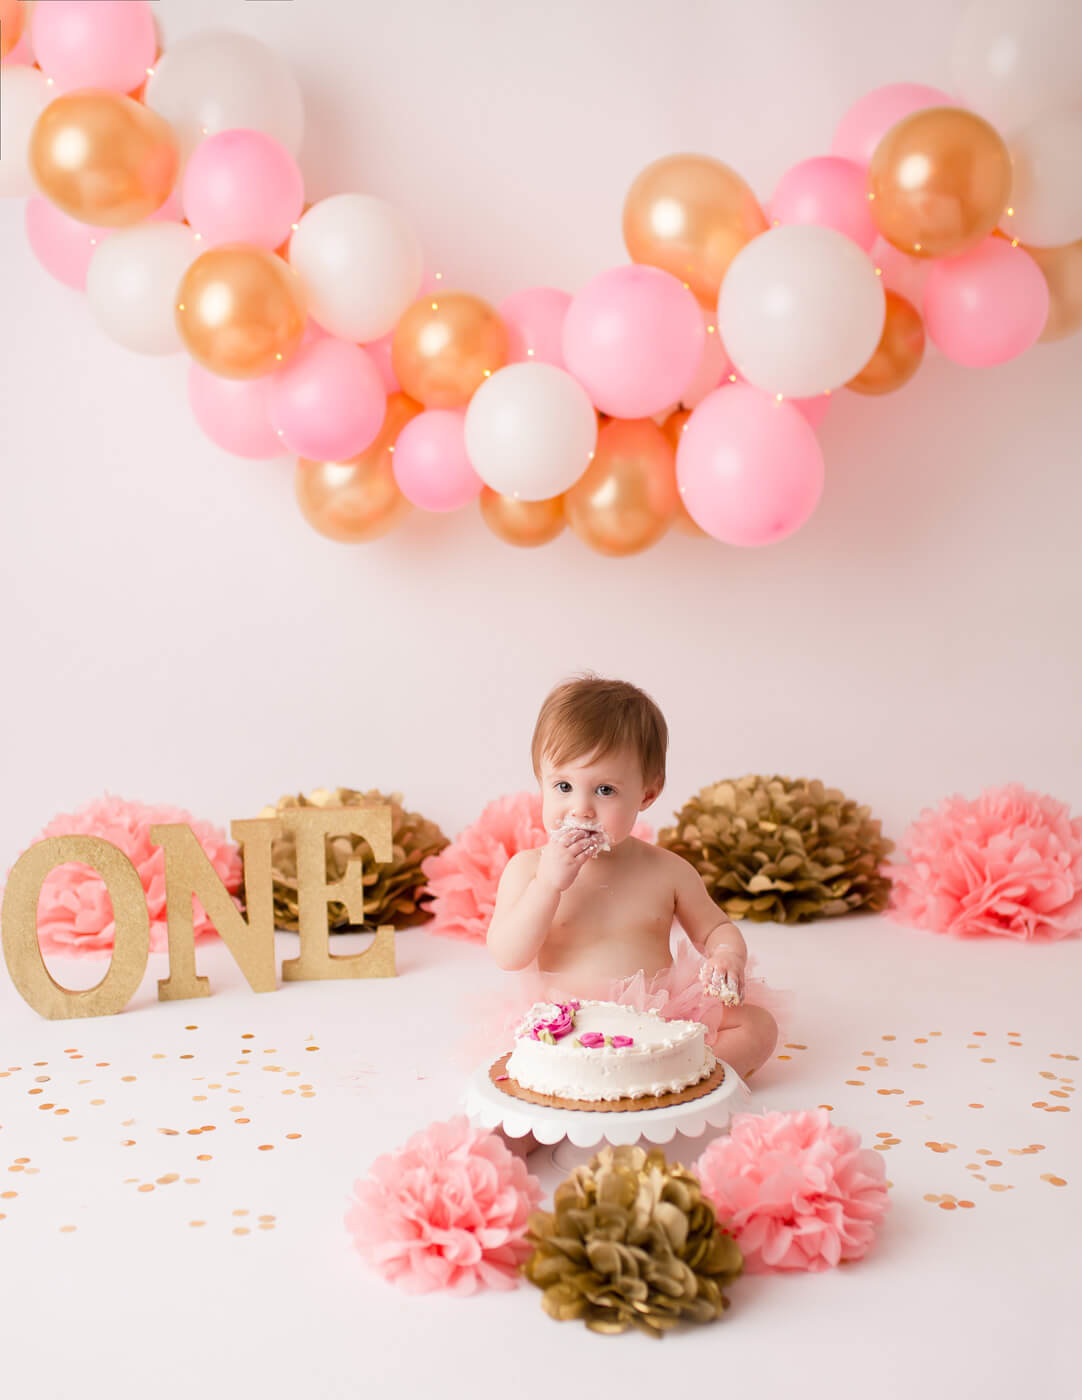 Pink and Gold cake smash in or Rochester, NY studio.